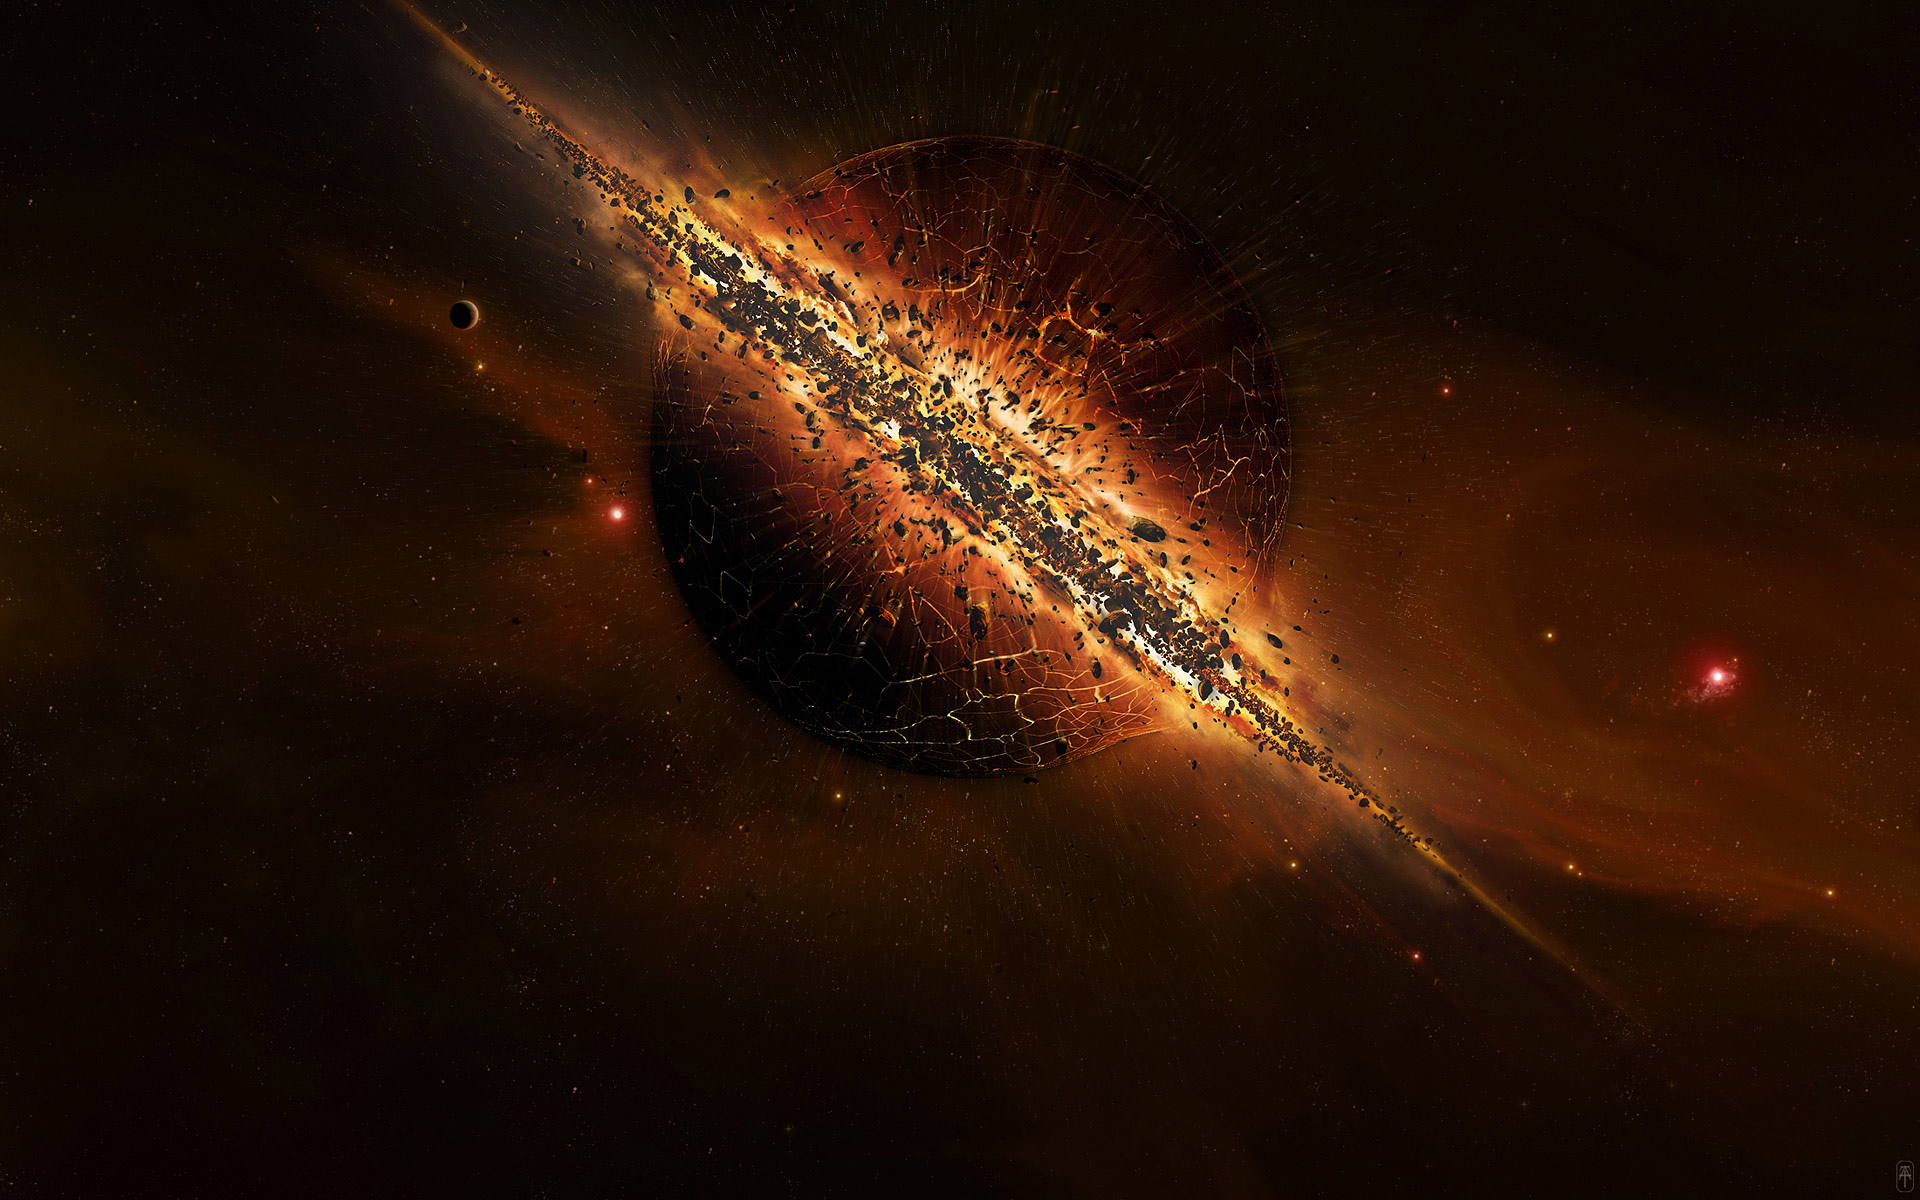 Explosion full hd wallpaper and background image - Space wallpaper large ...